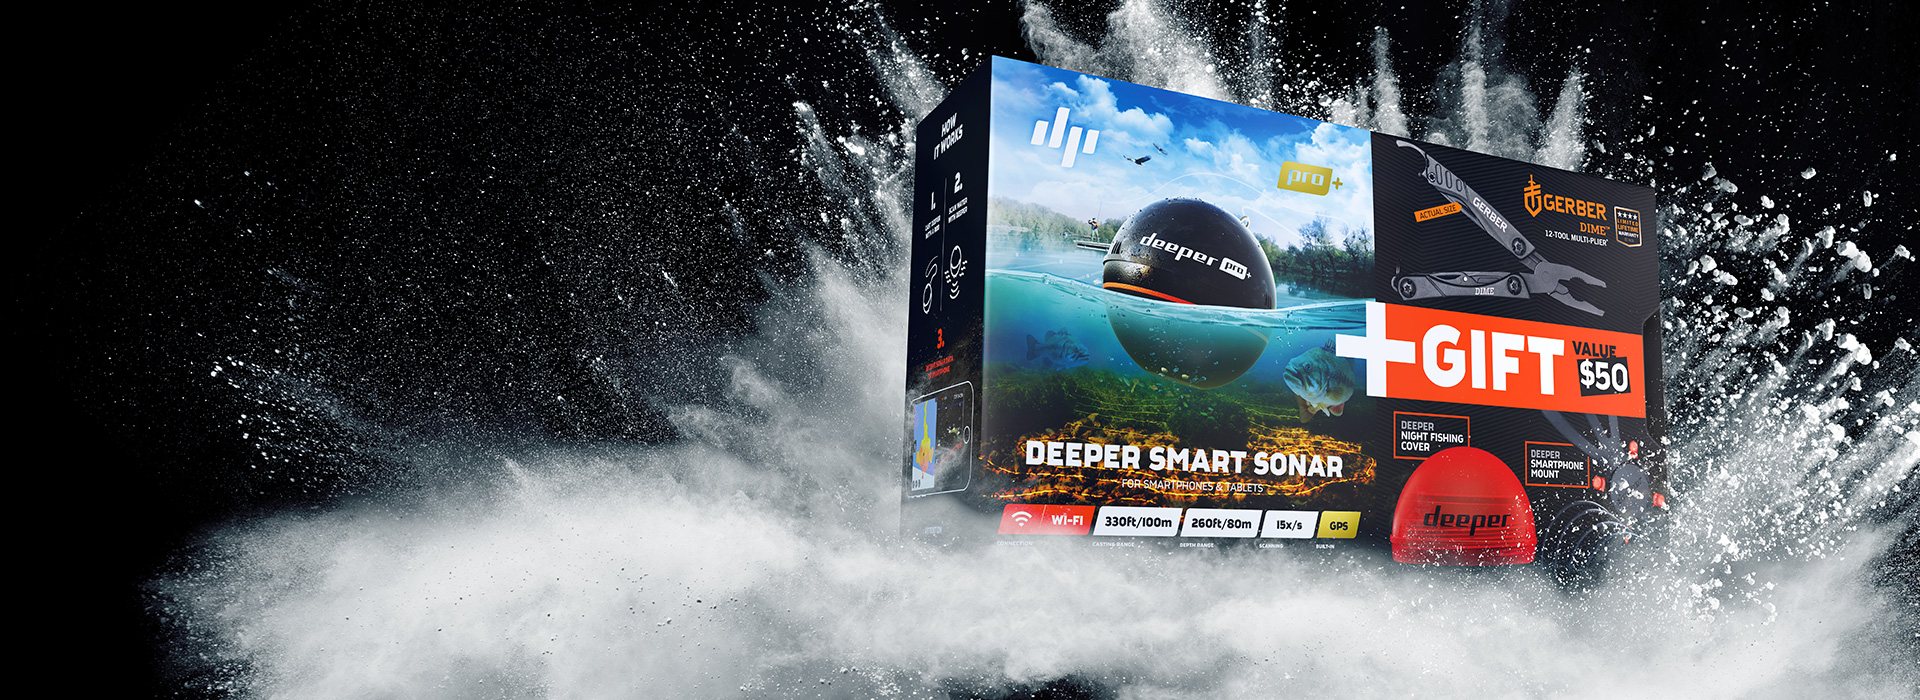 Deeper PRO+ SPECIAL OFFER BUNDLEPerfect Addition to Your Fishing Arsenal